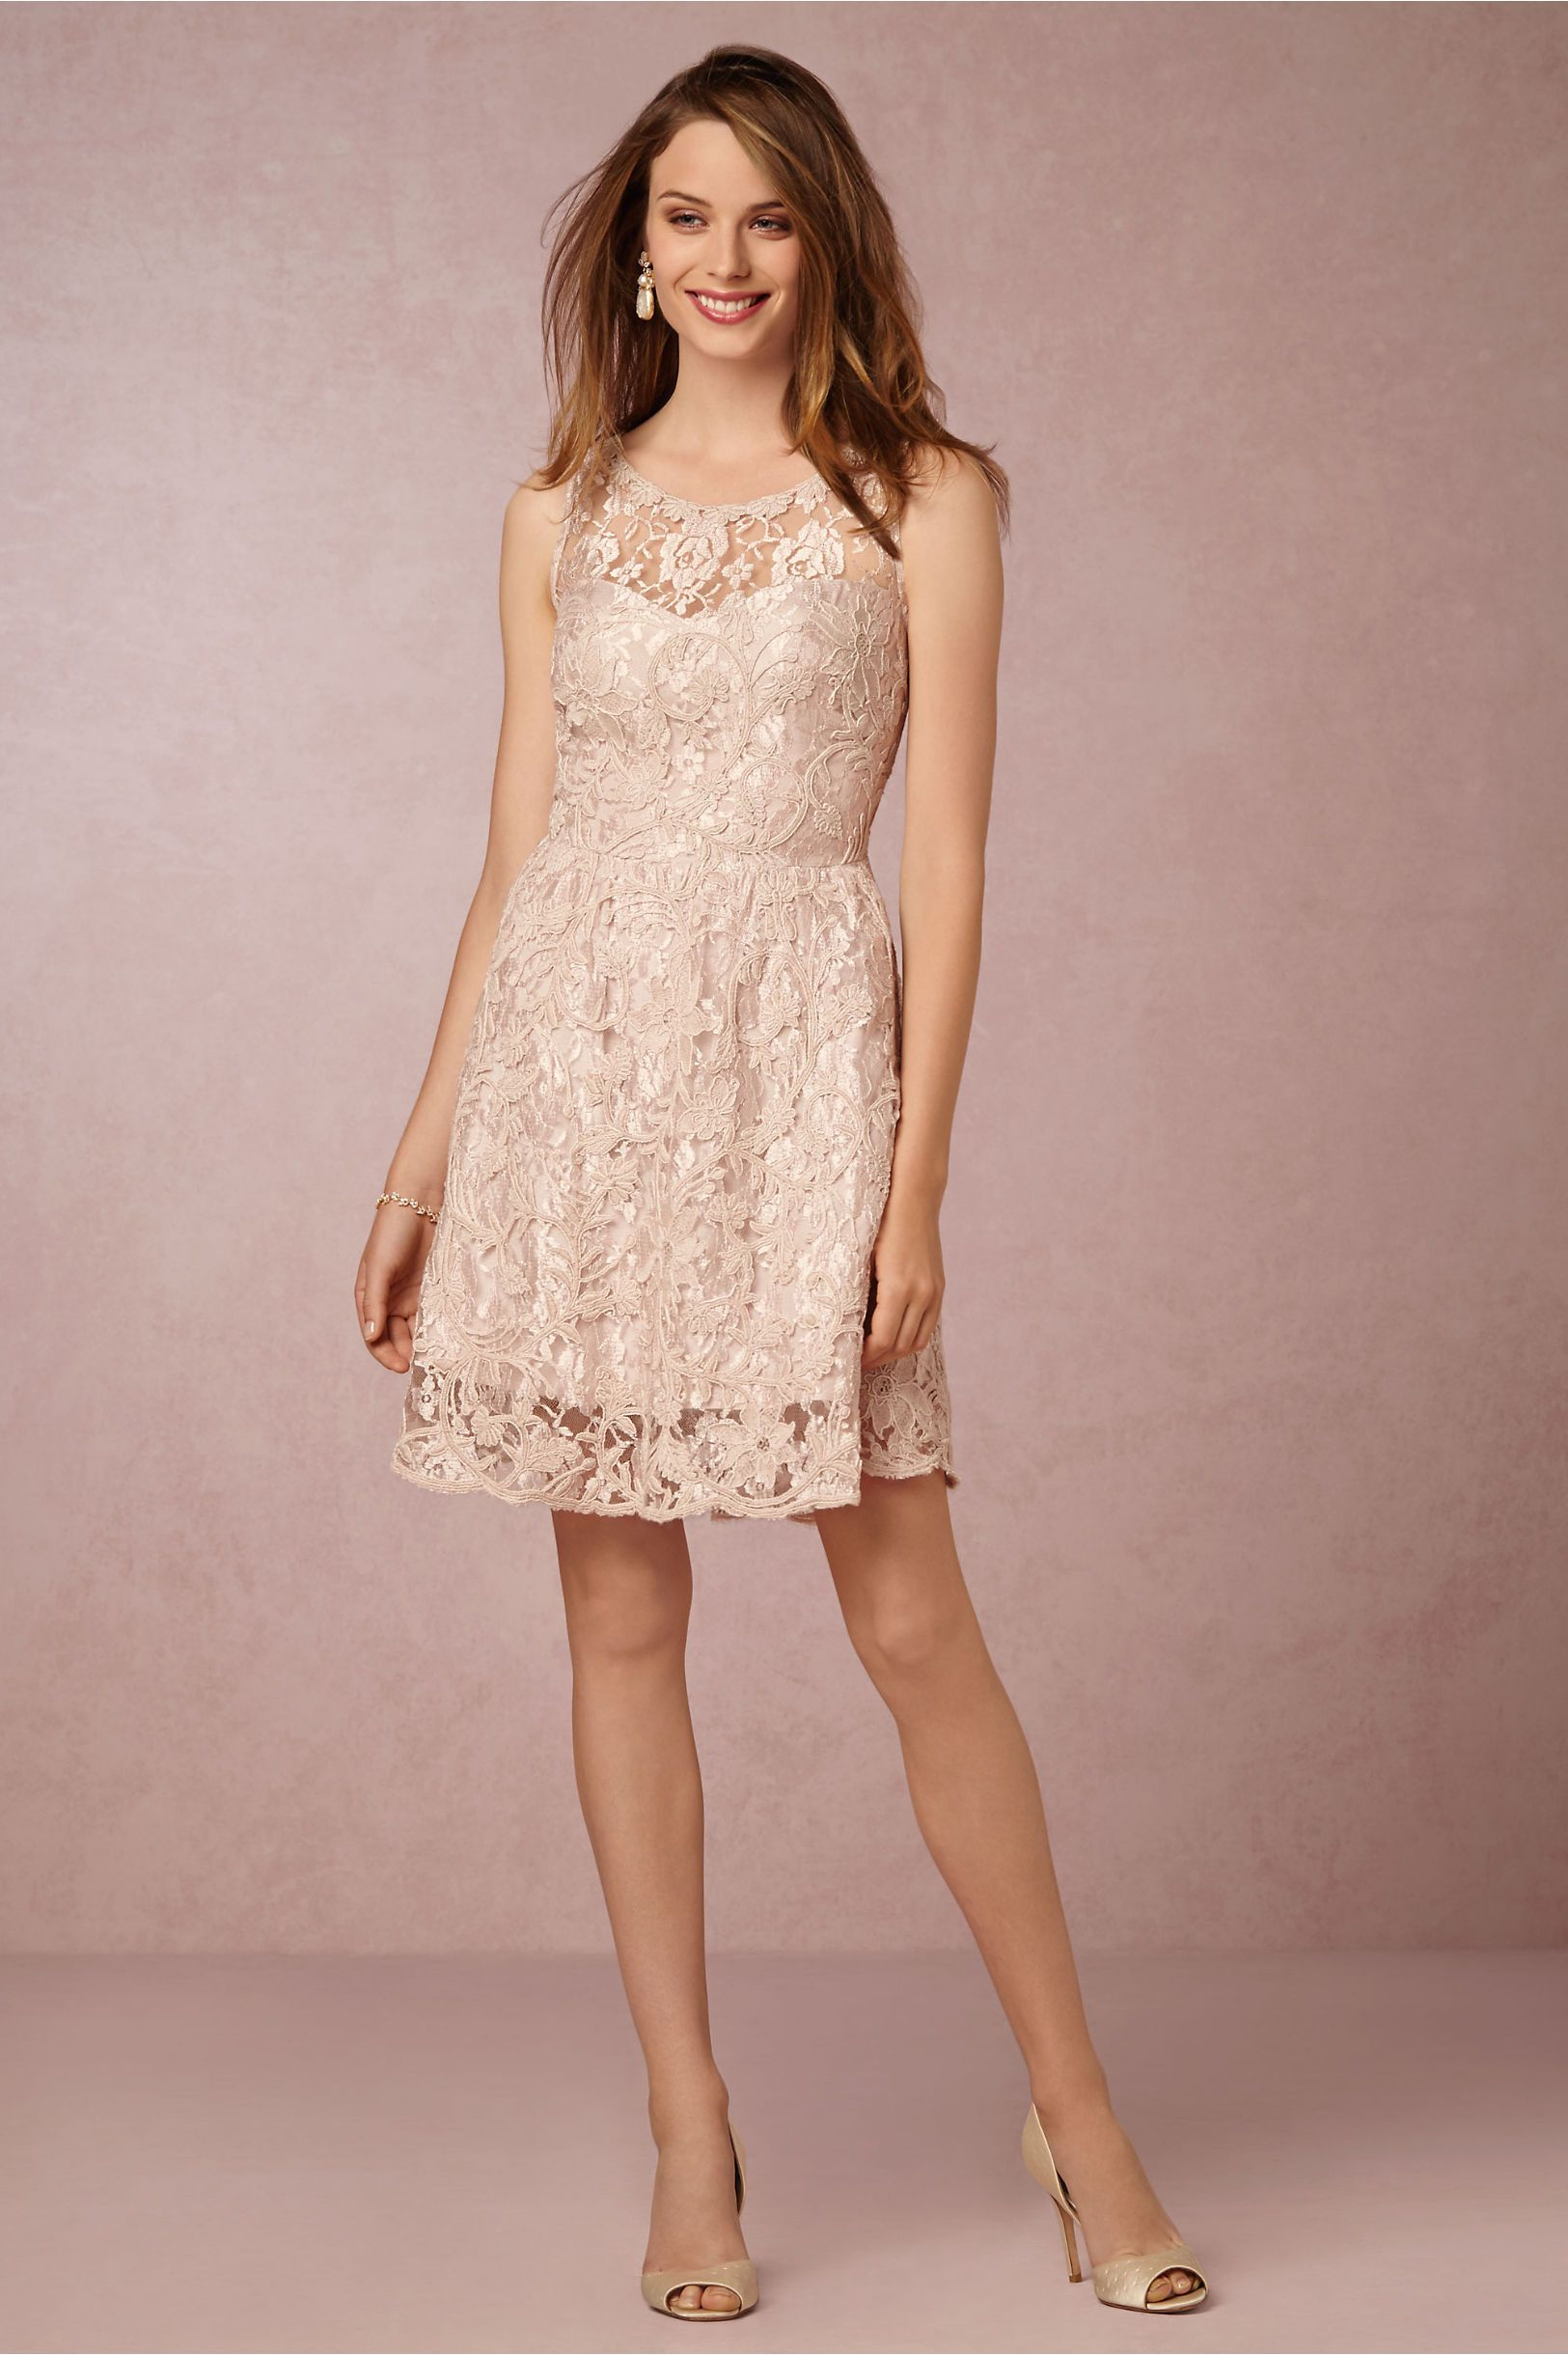 Piper Dress from @BHLDN | WEDDING | Pinterest | Vestido básico ...